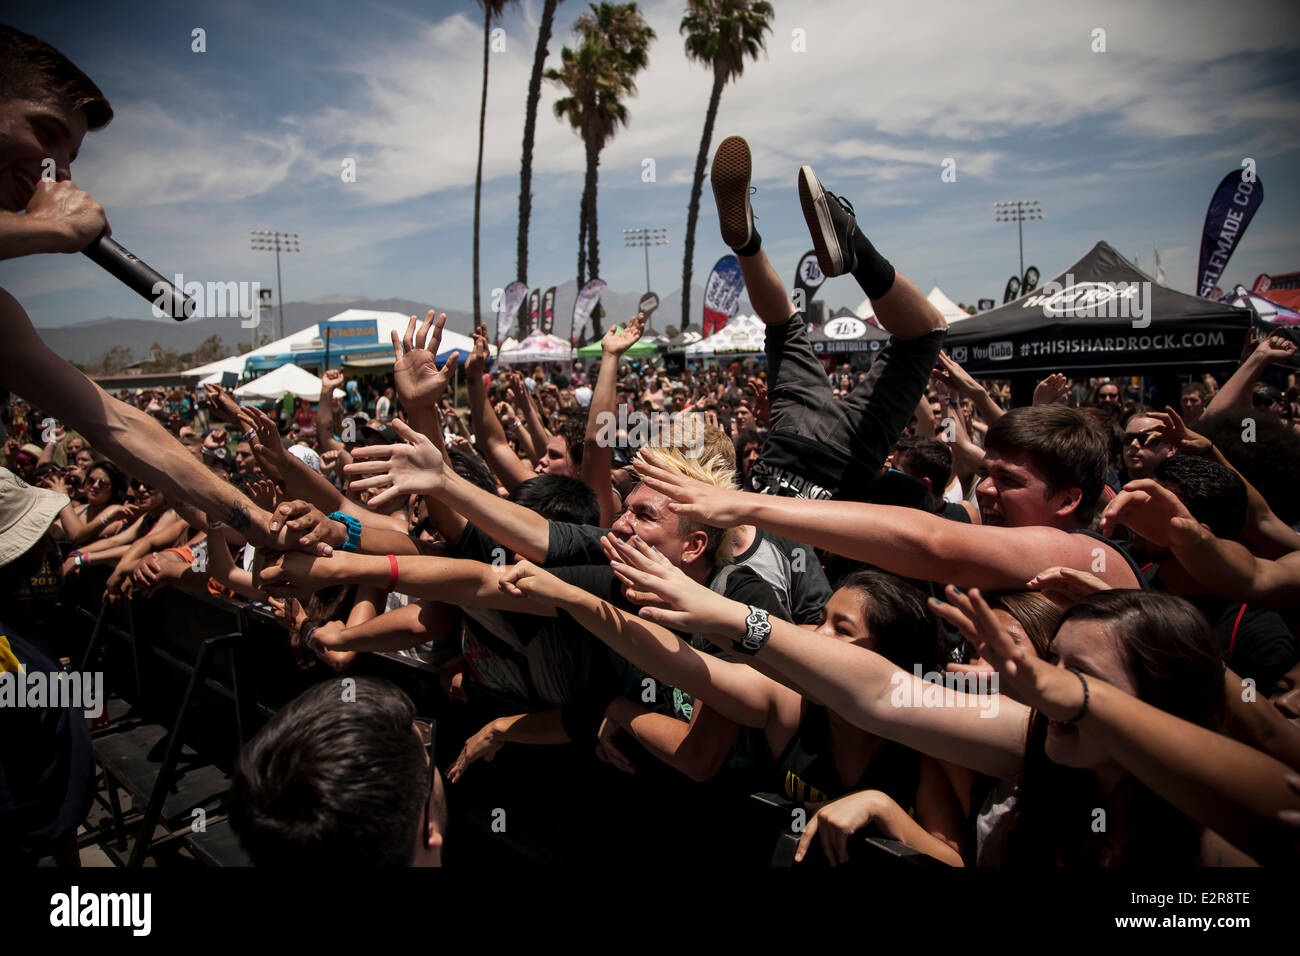 Pomona, CA, USA. 20th June, 2014. Fans flip for Dangerkids at the Vans Warped Tour. Thousands of young alternative - Stock Image